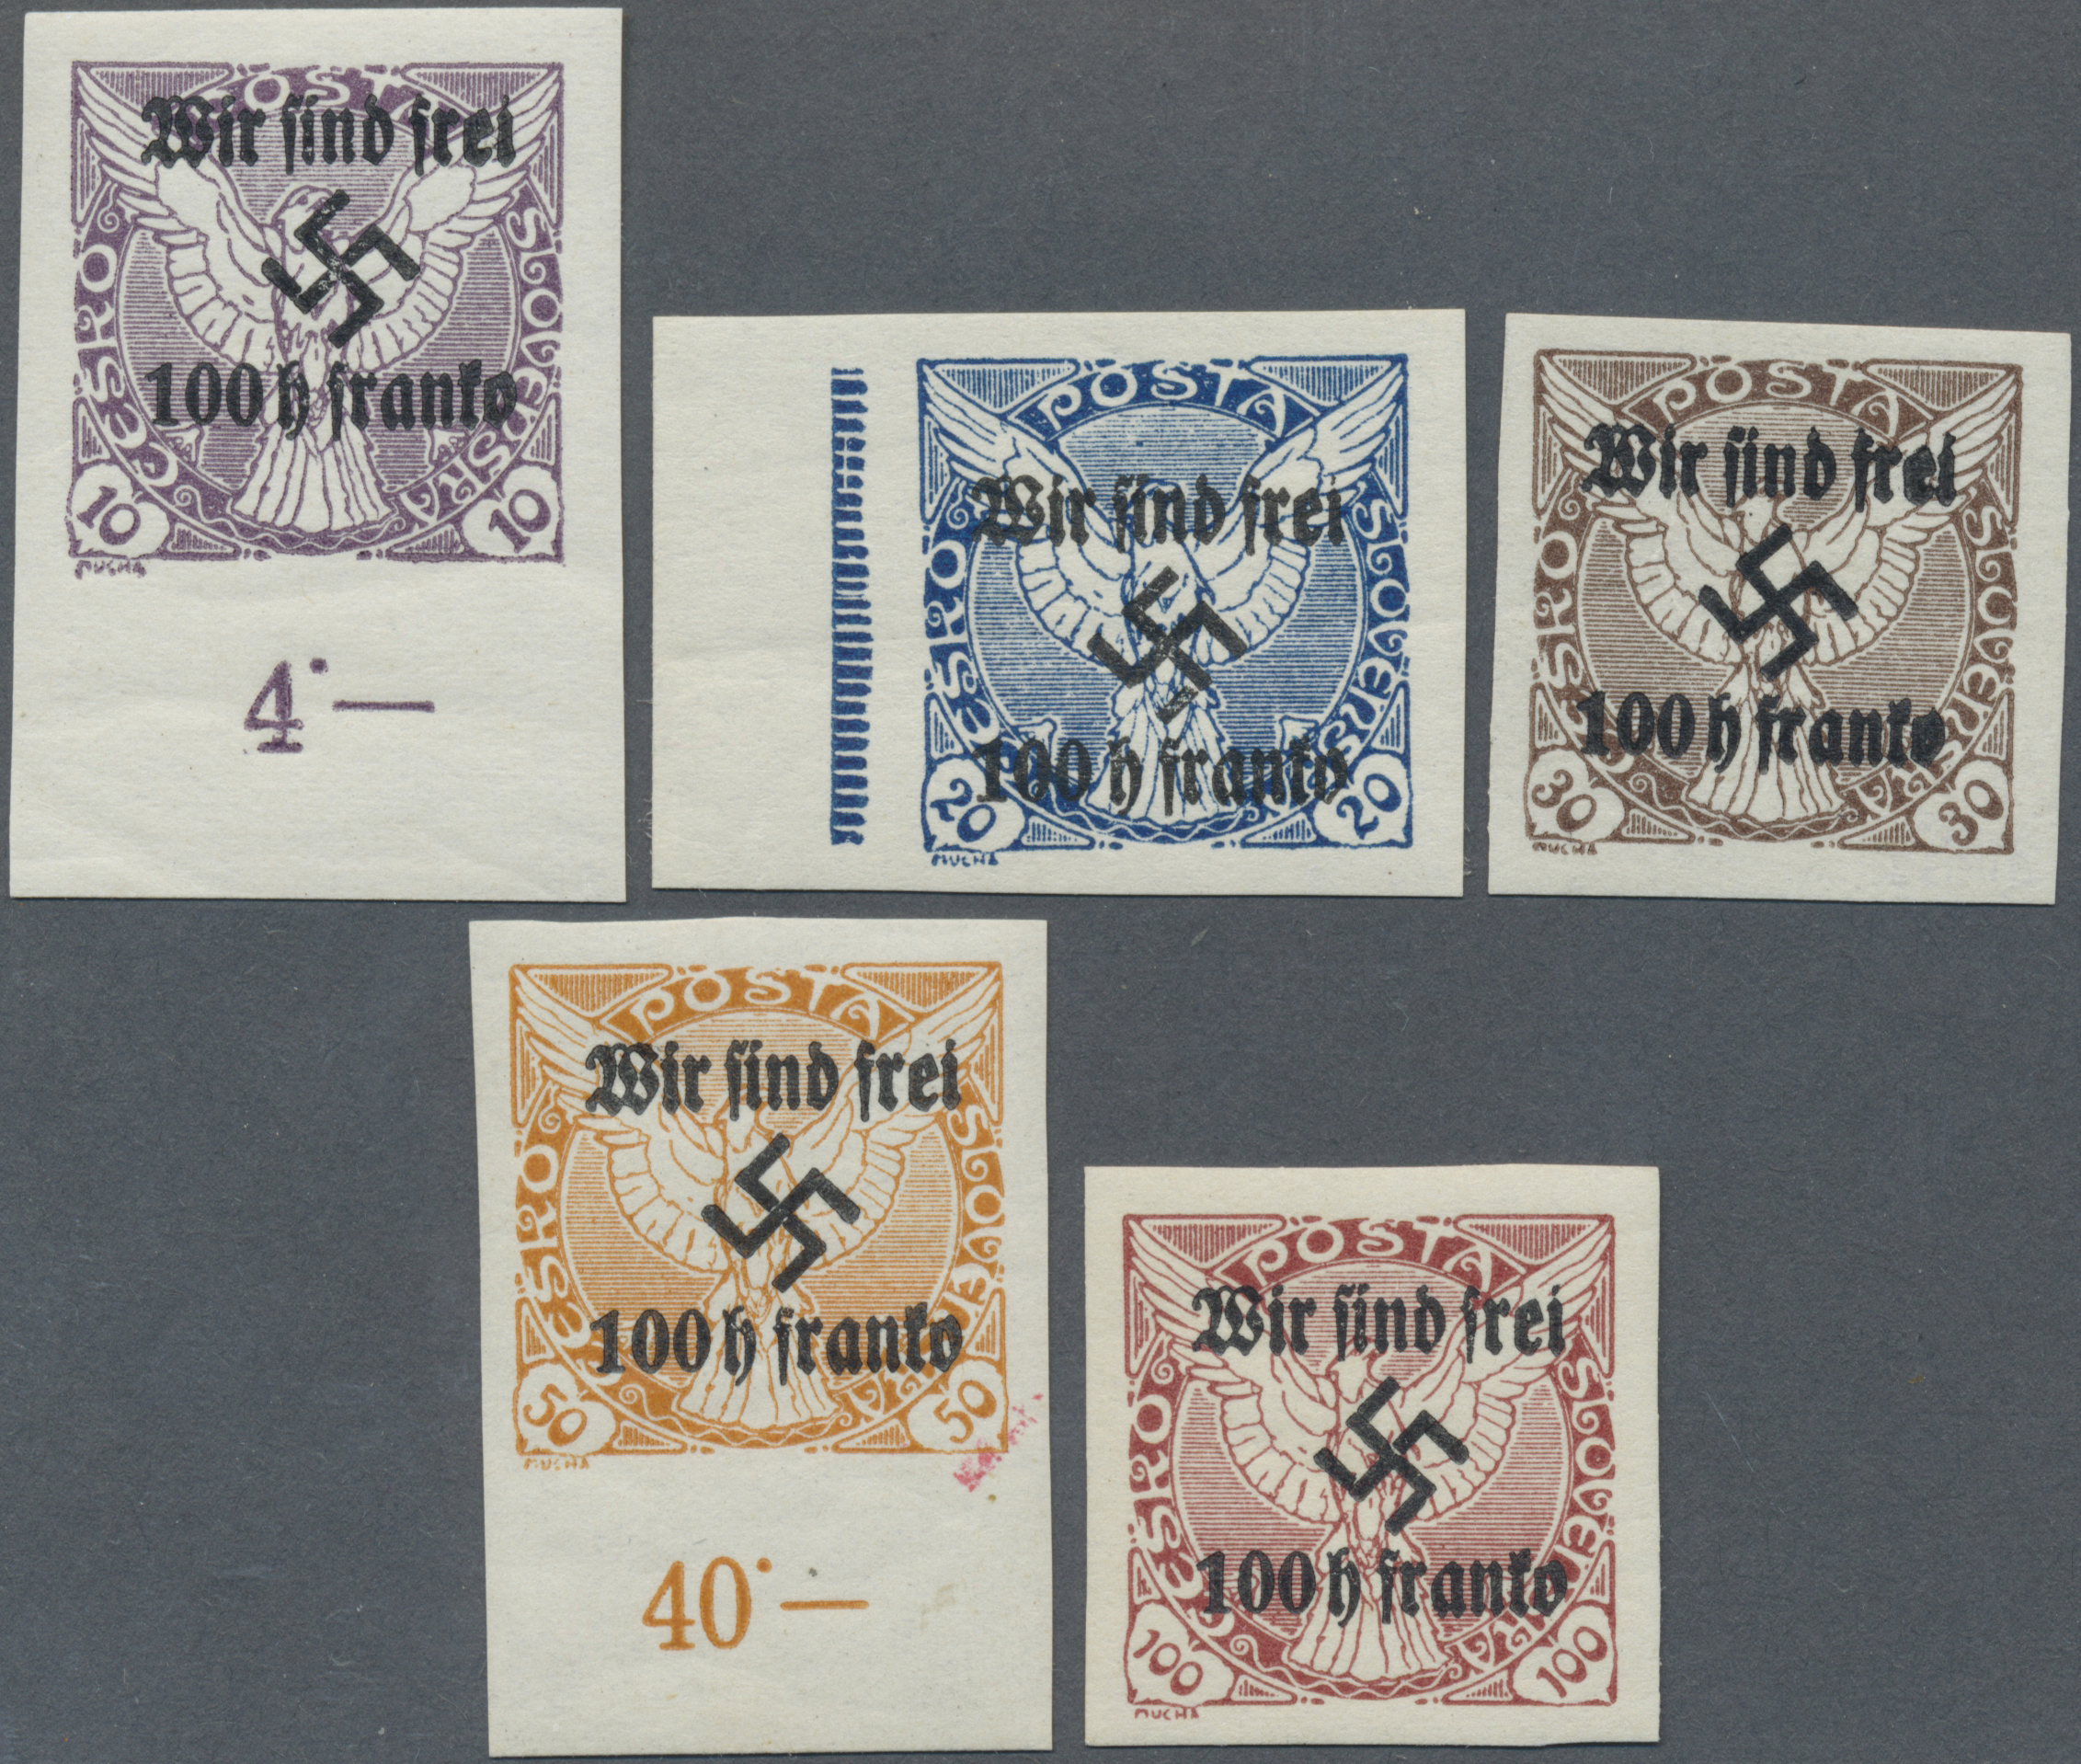 Lot 19260 - sudetenland - rumburg  -  Auktionshaus Christoph Gärtner GmbH & Co. KG Auction #40 Germany, Picture Post Cards, Collections Overseas, Thematics